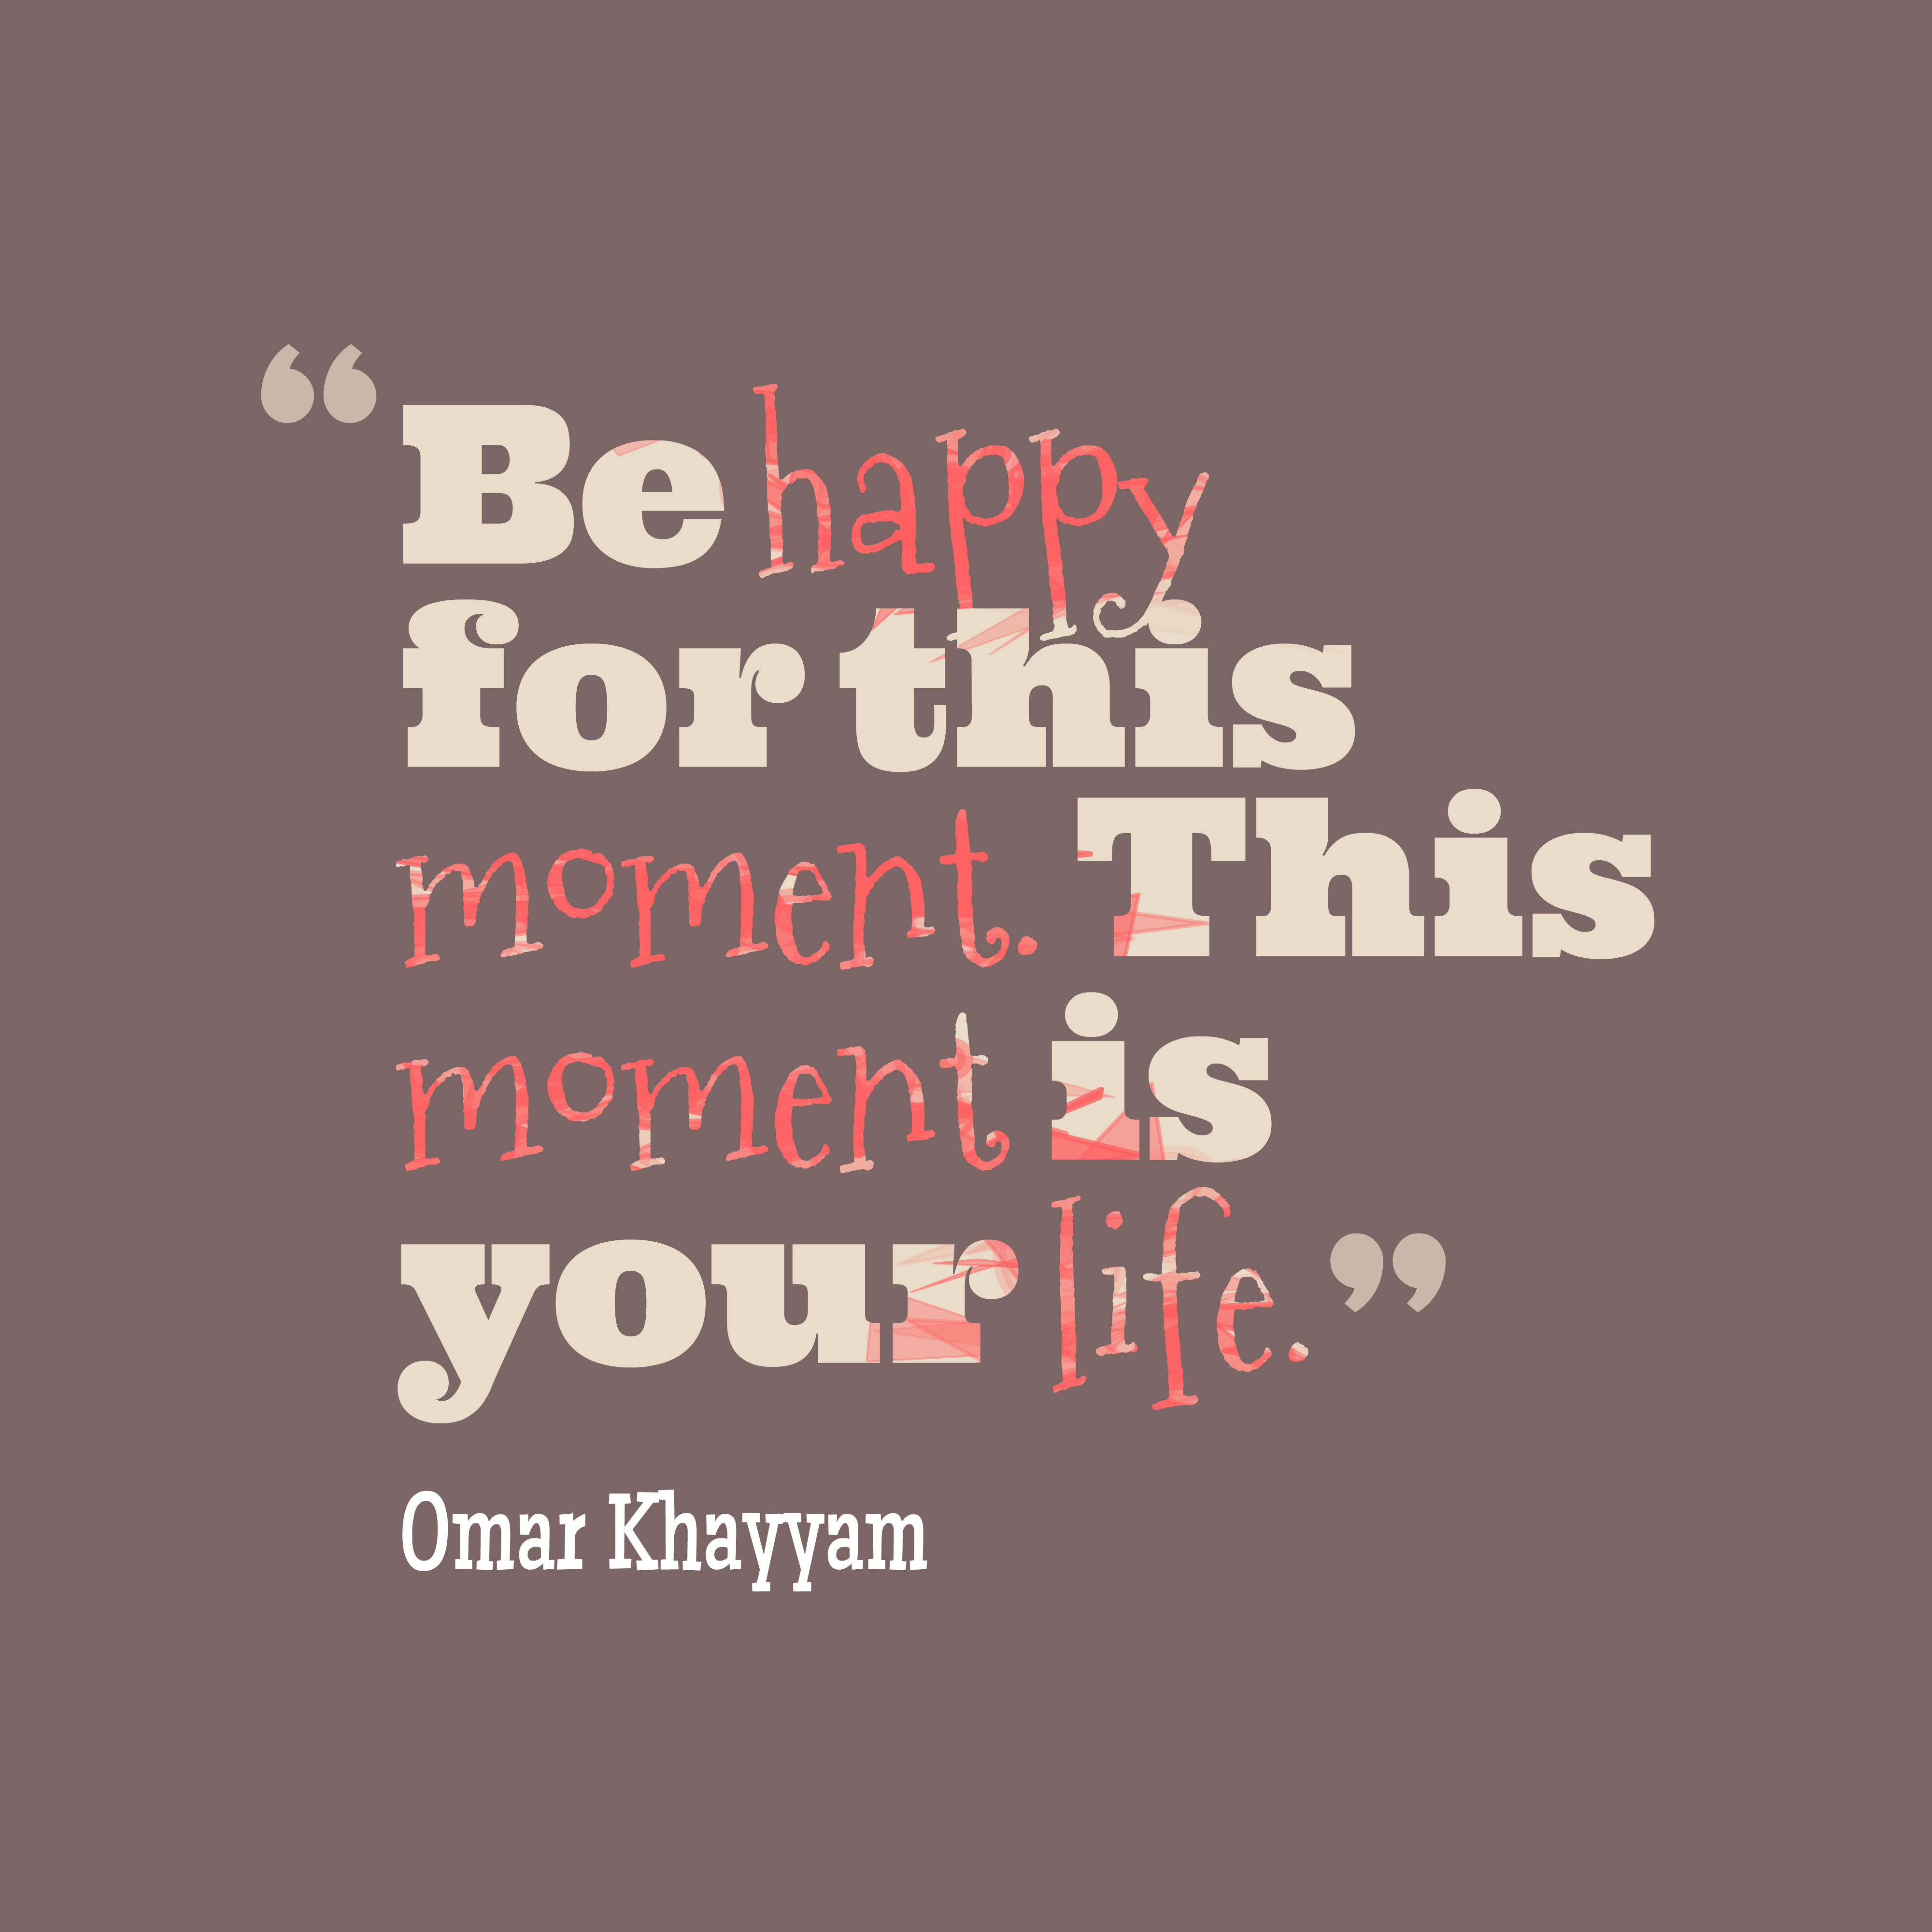 Omar Khayyam Quote About Happy